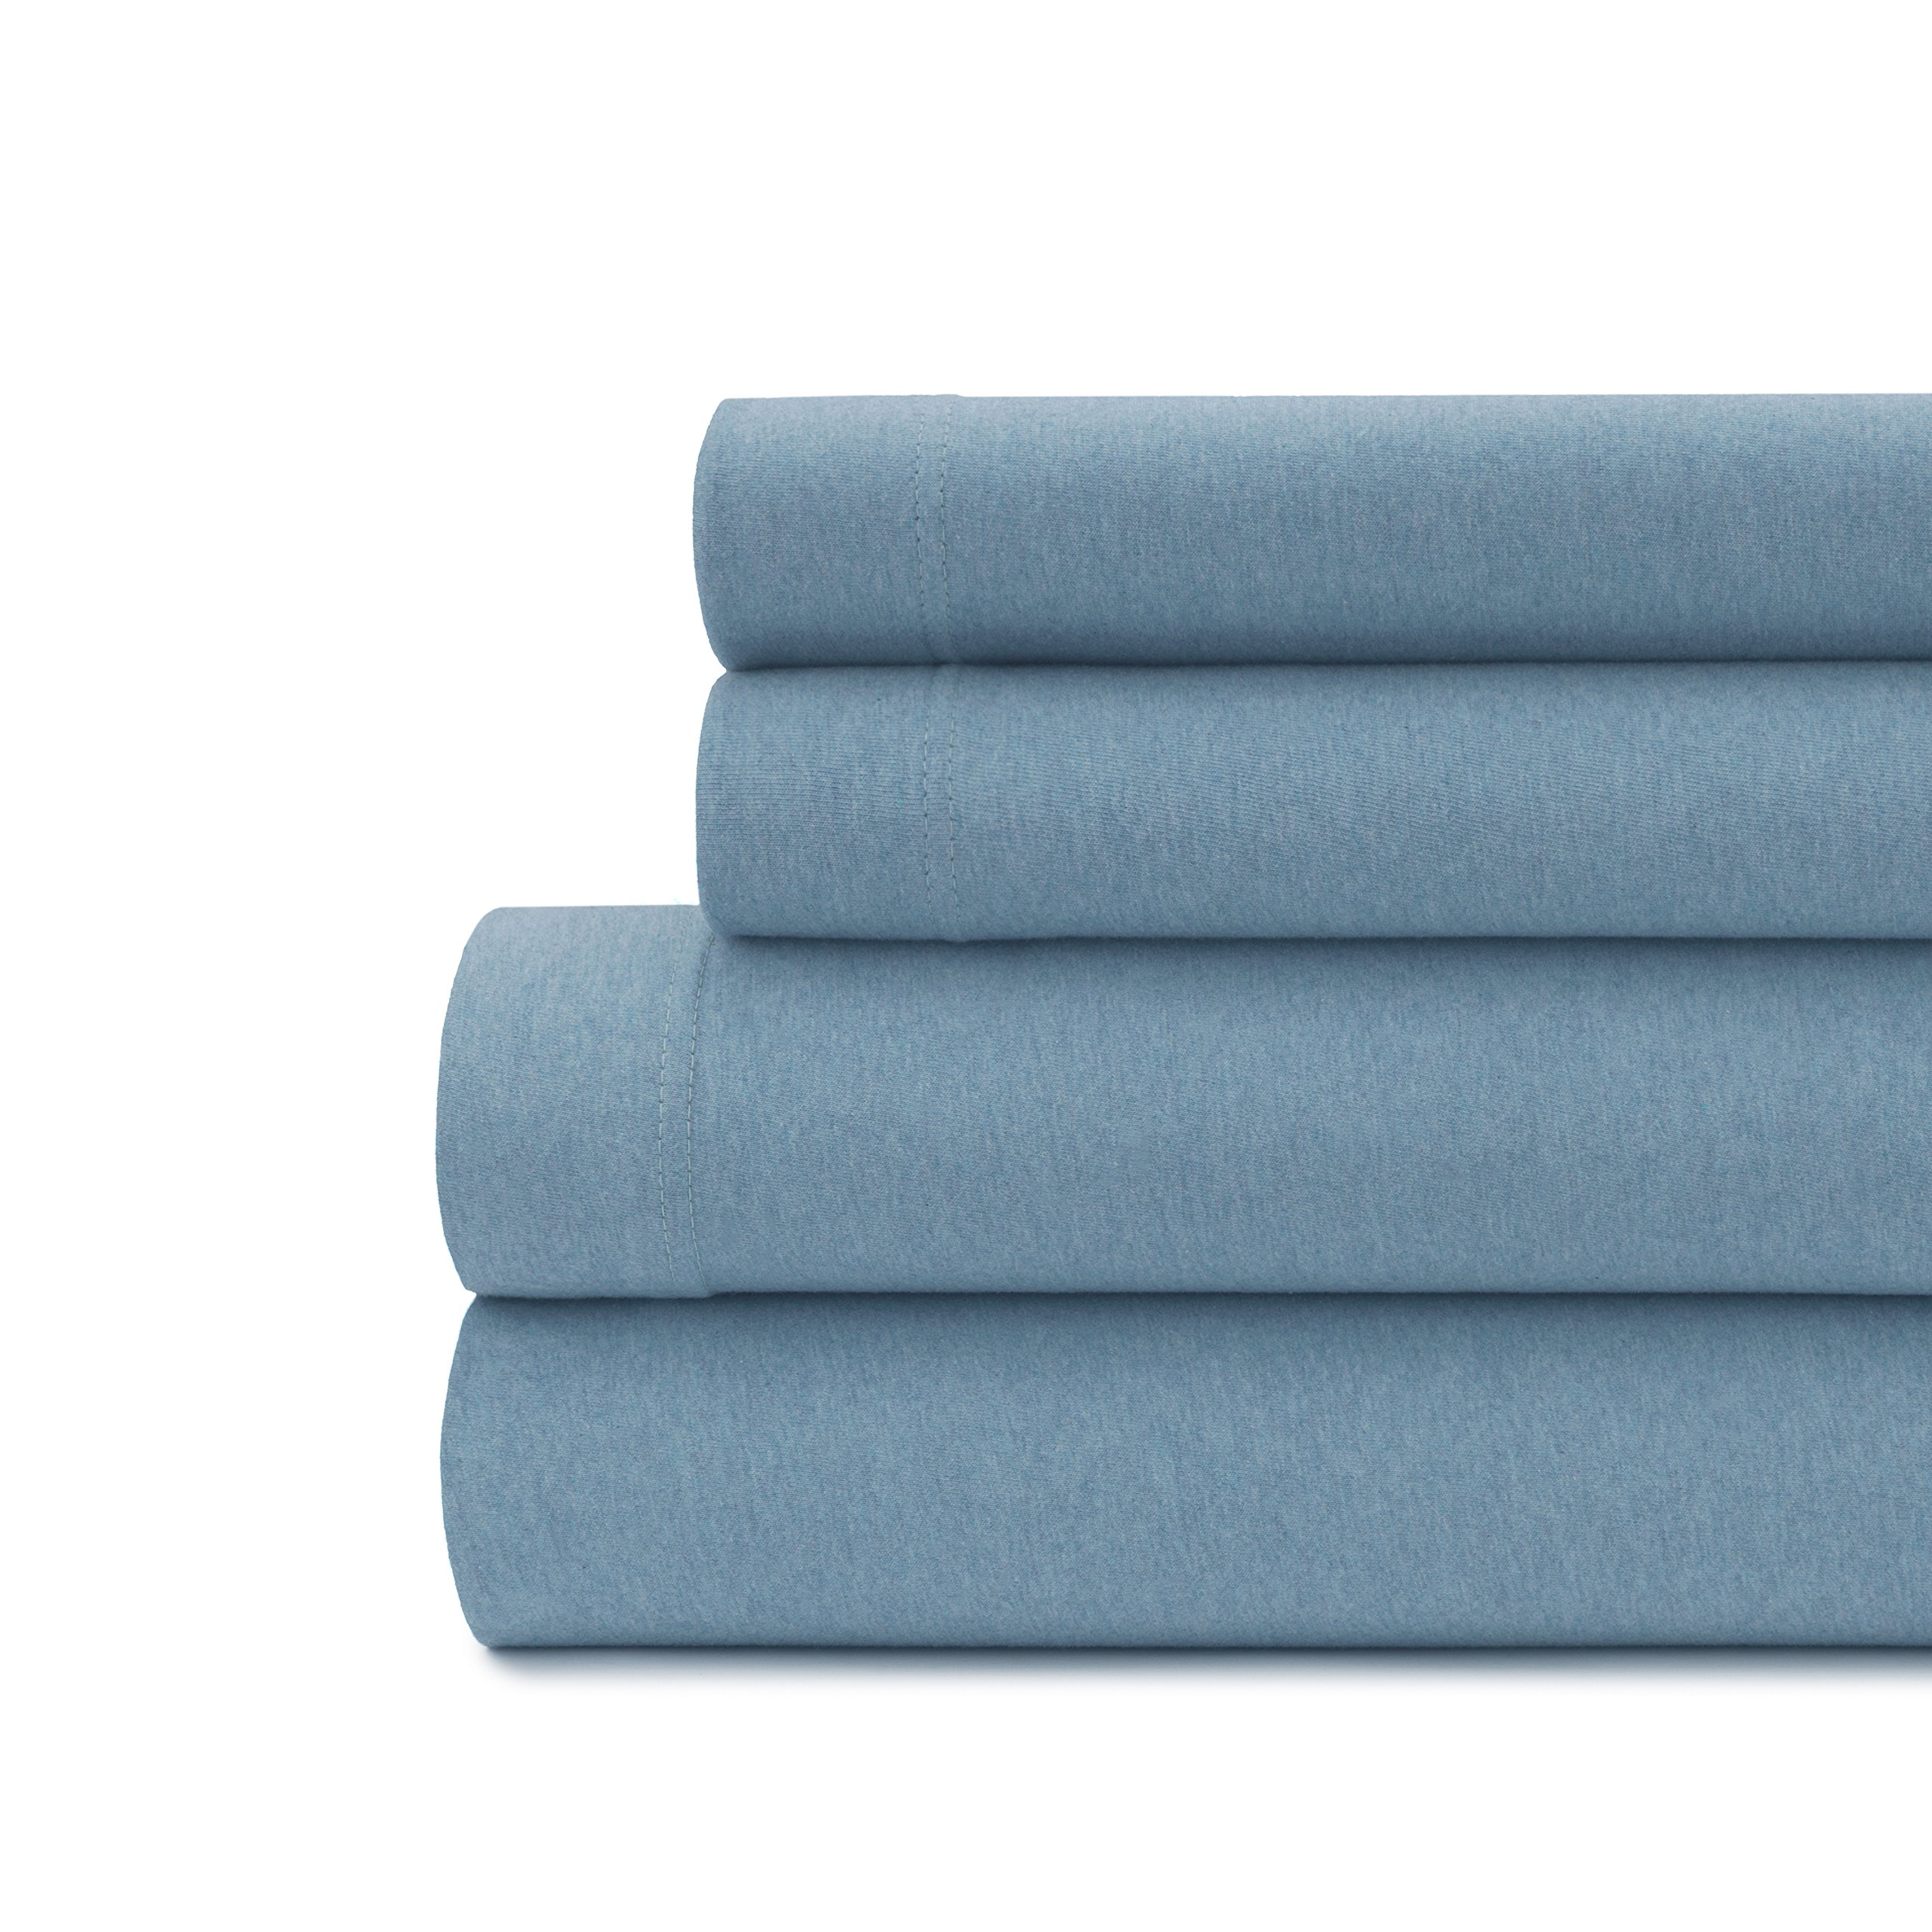 Briarwood Home King Jersey Knit Heather Bed Sheet Set - 4 Pc Soft & Luxurious, 100% Cotton Bedding - Breathable, Deep Pocket, Comfortable & Cozy - T-Shirt Soft All Season Sheets (King, Blue)